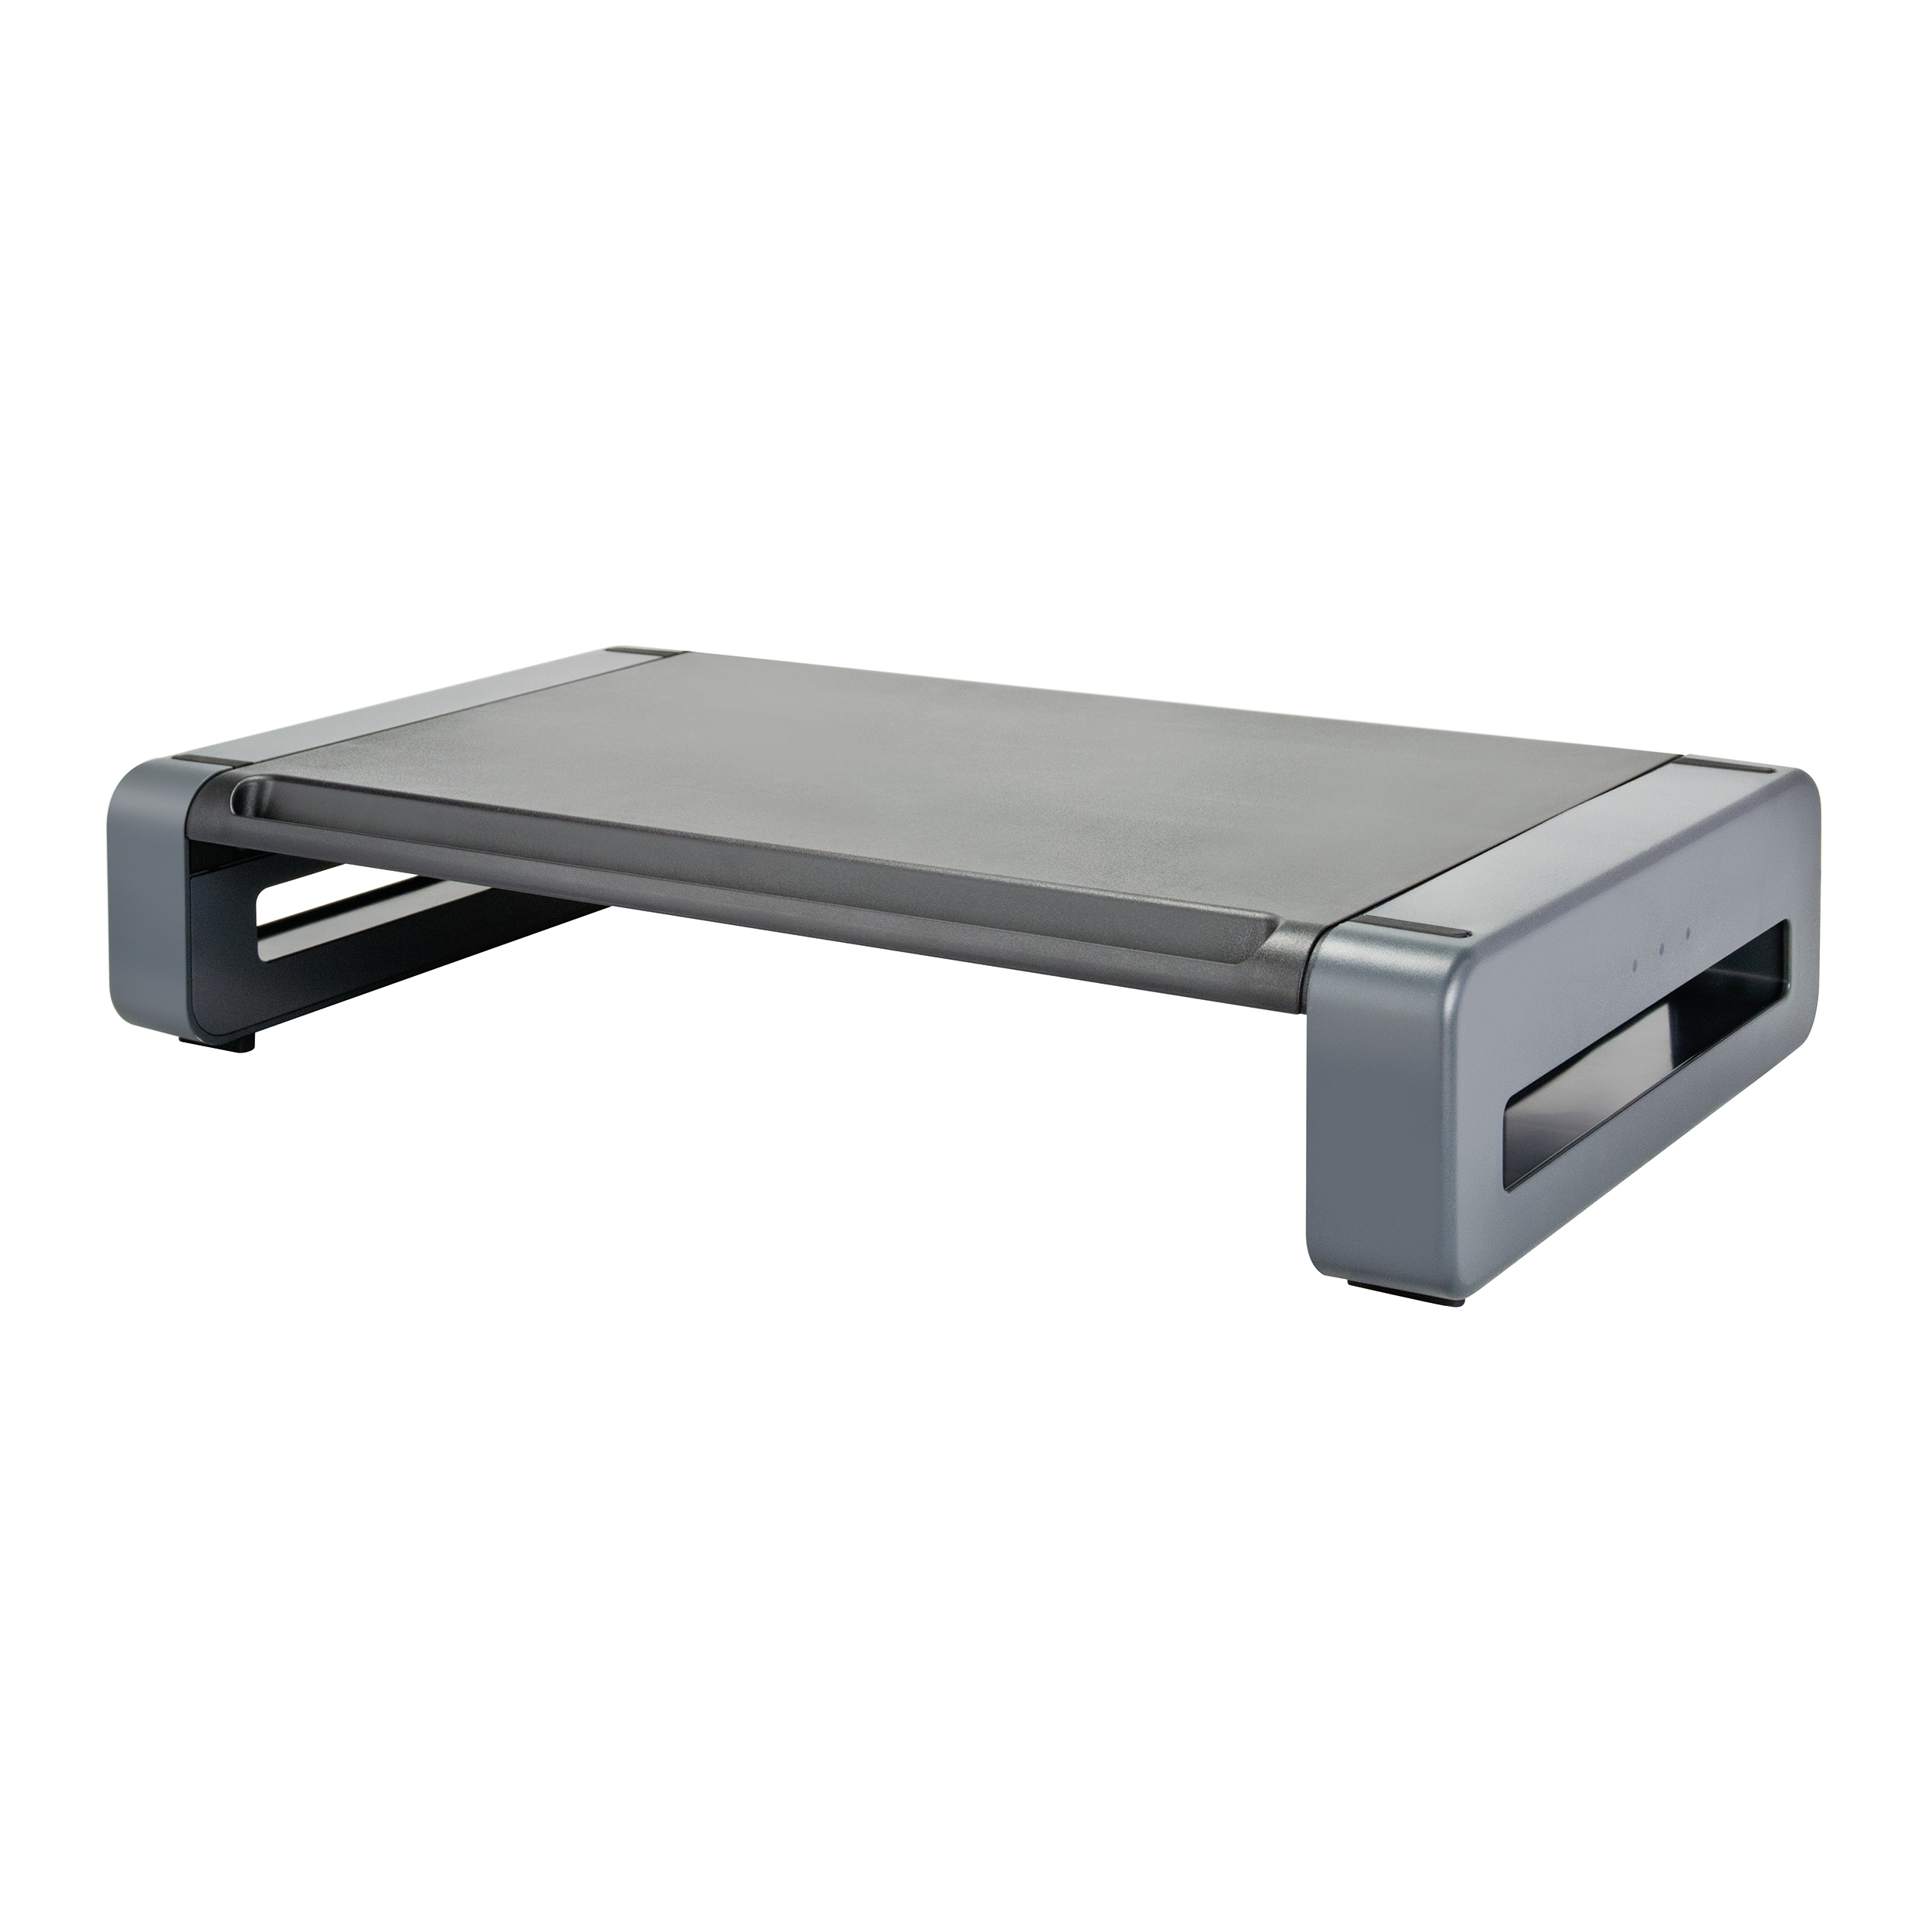 Deluxe Monitor Stand Capacity Up to 24inch Ref MS-1001G